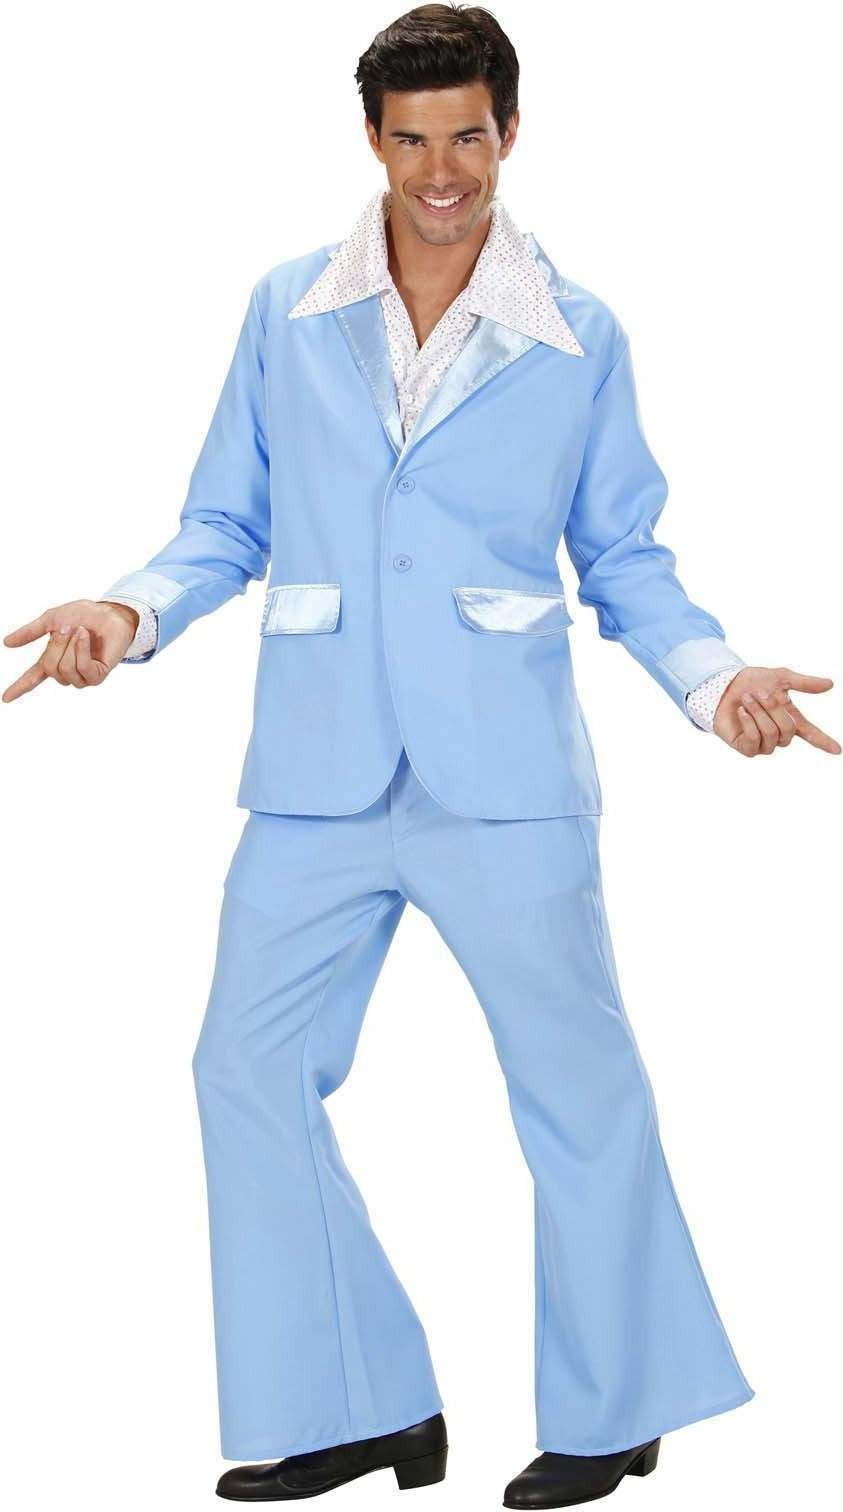 Mens Turquoise Party Suits (Jacket Pants) Disco - Chest 46-48 (Turquoise, Blue)